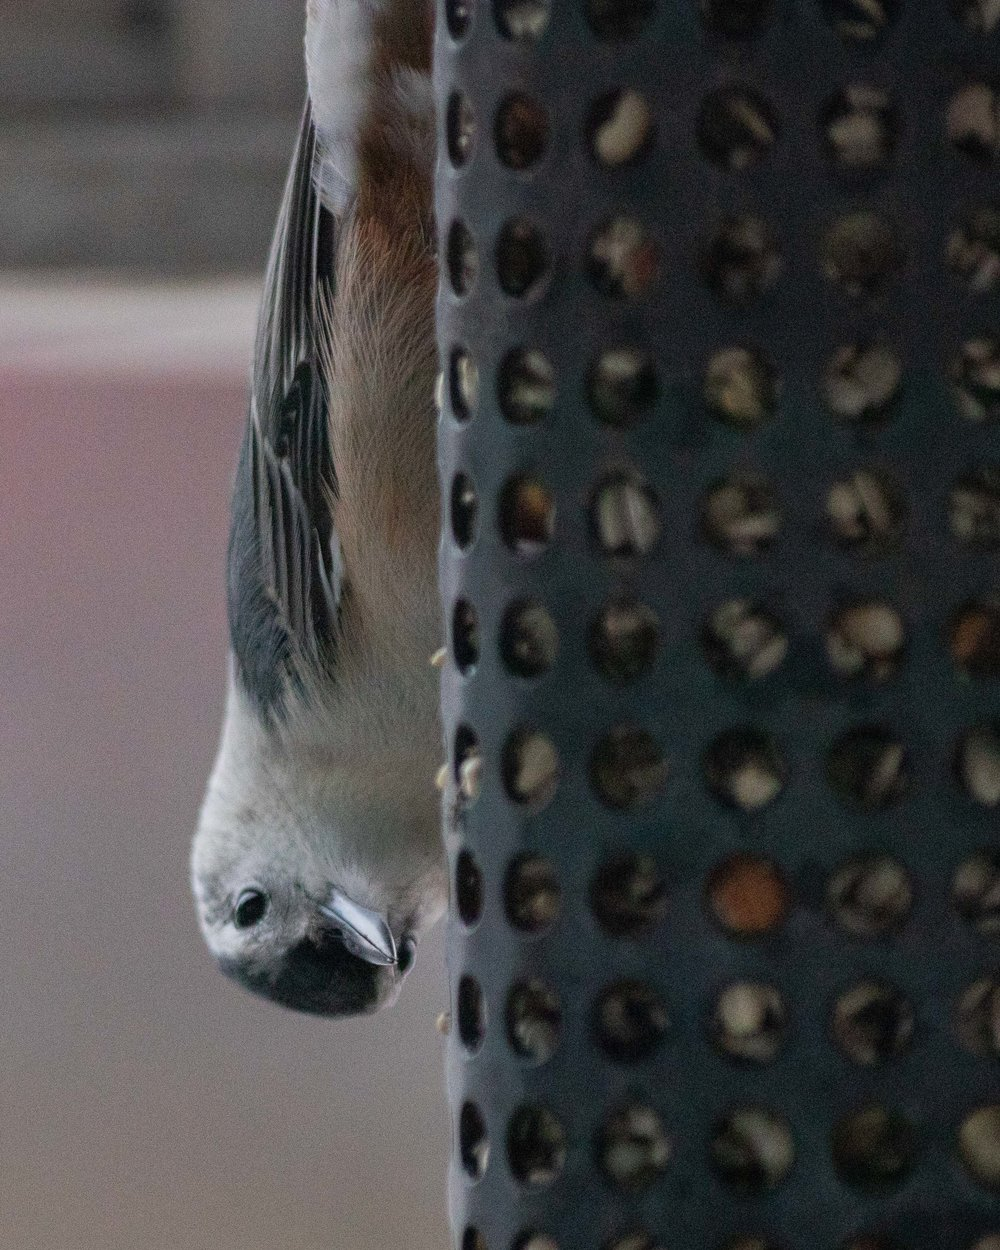 Today I learned that this is a White-breasted Nuthatch. He was hanging upside down on our feeder this afternoon.